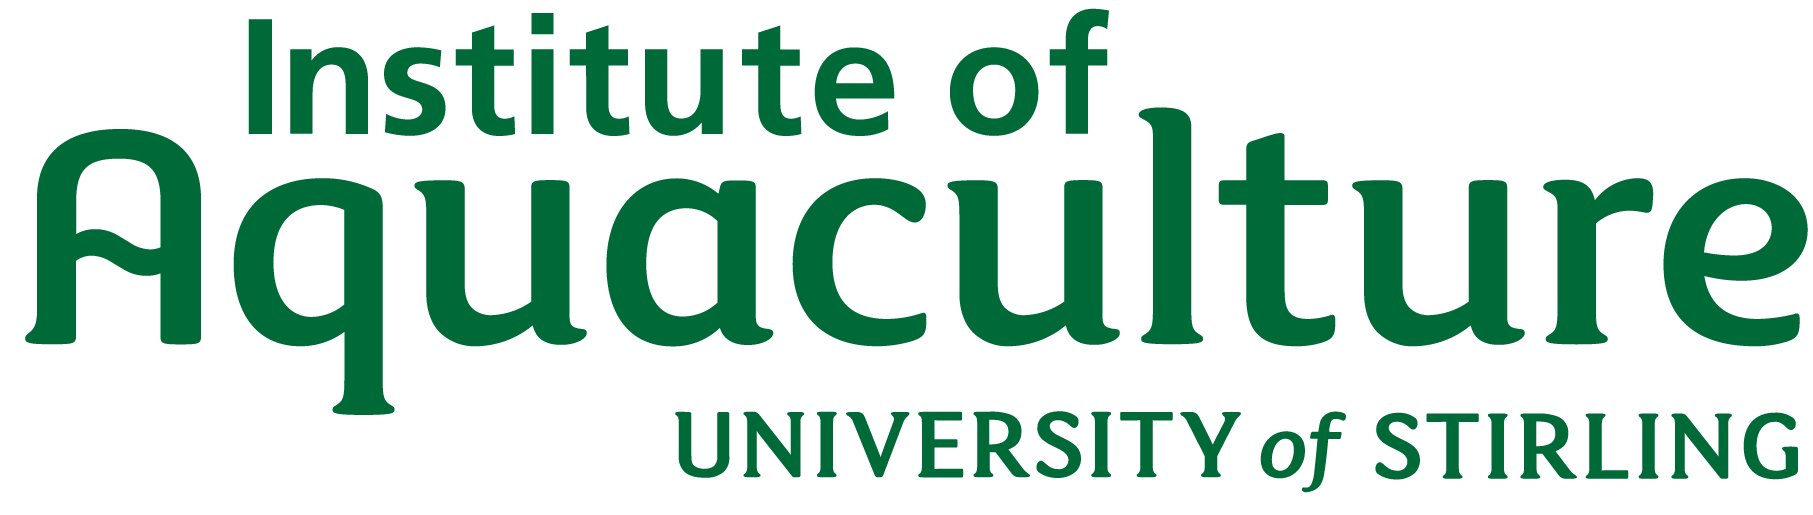 Aquaculture Logo